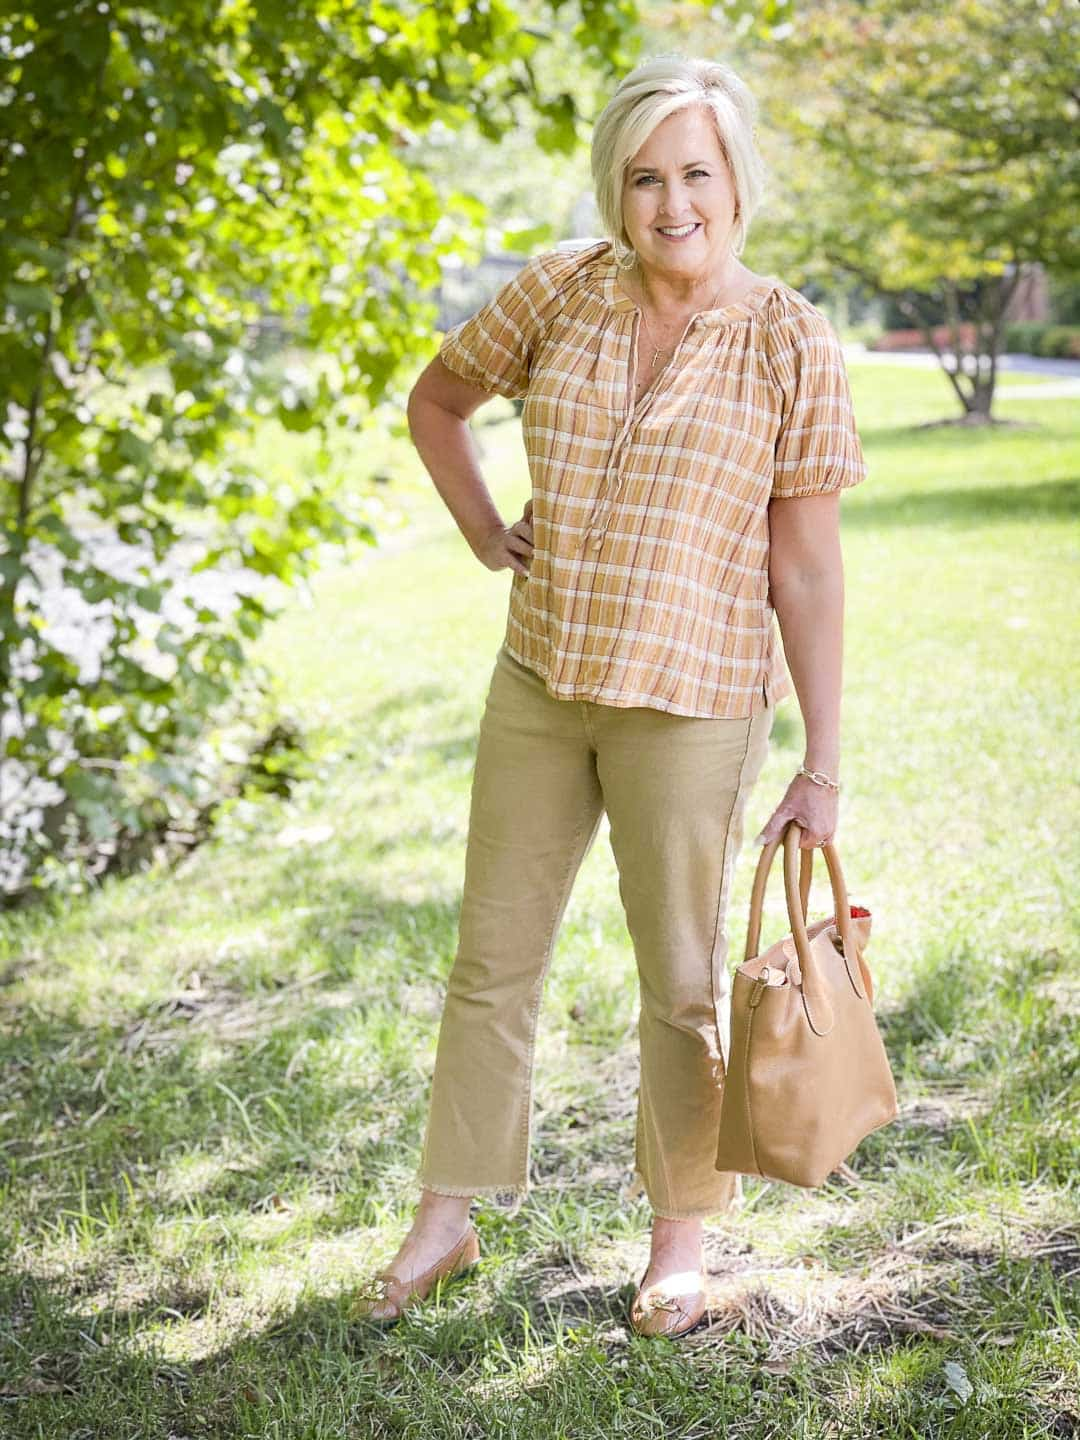 Over 40 Fashion Blogger, Tania Stephens, looks casual in her fall festive plaid top from Loft and cropped jeans